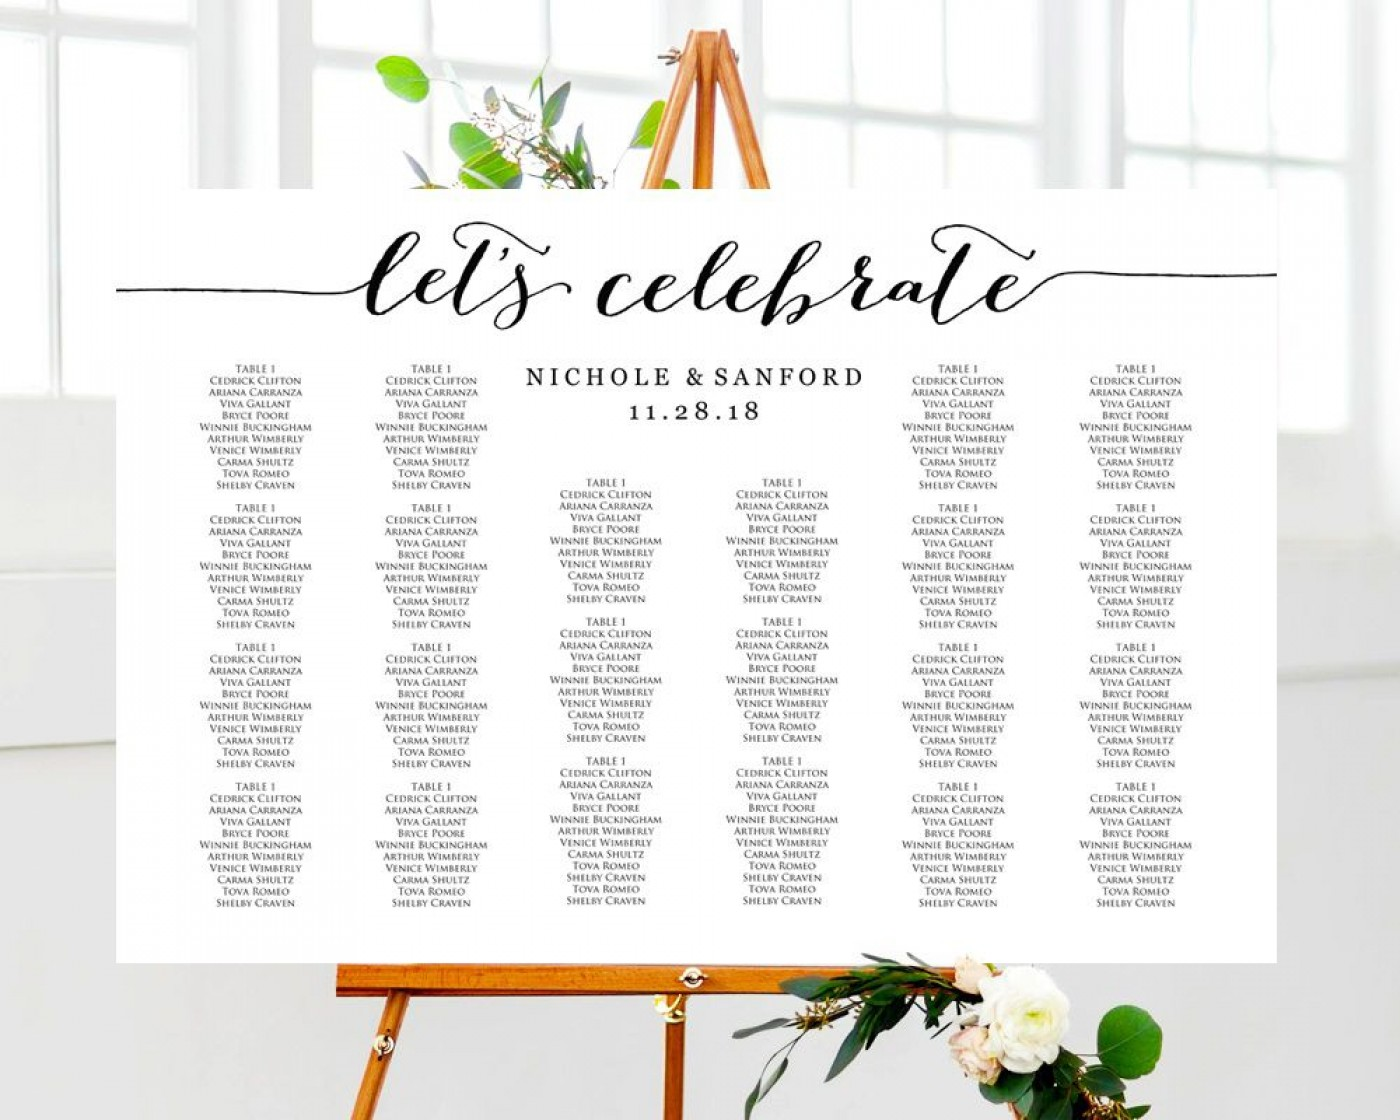 003 Remarkable Seating Chart Wedding Template Highest Clarity  Powerpoint Table Plan Reception Round1400